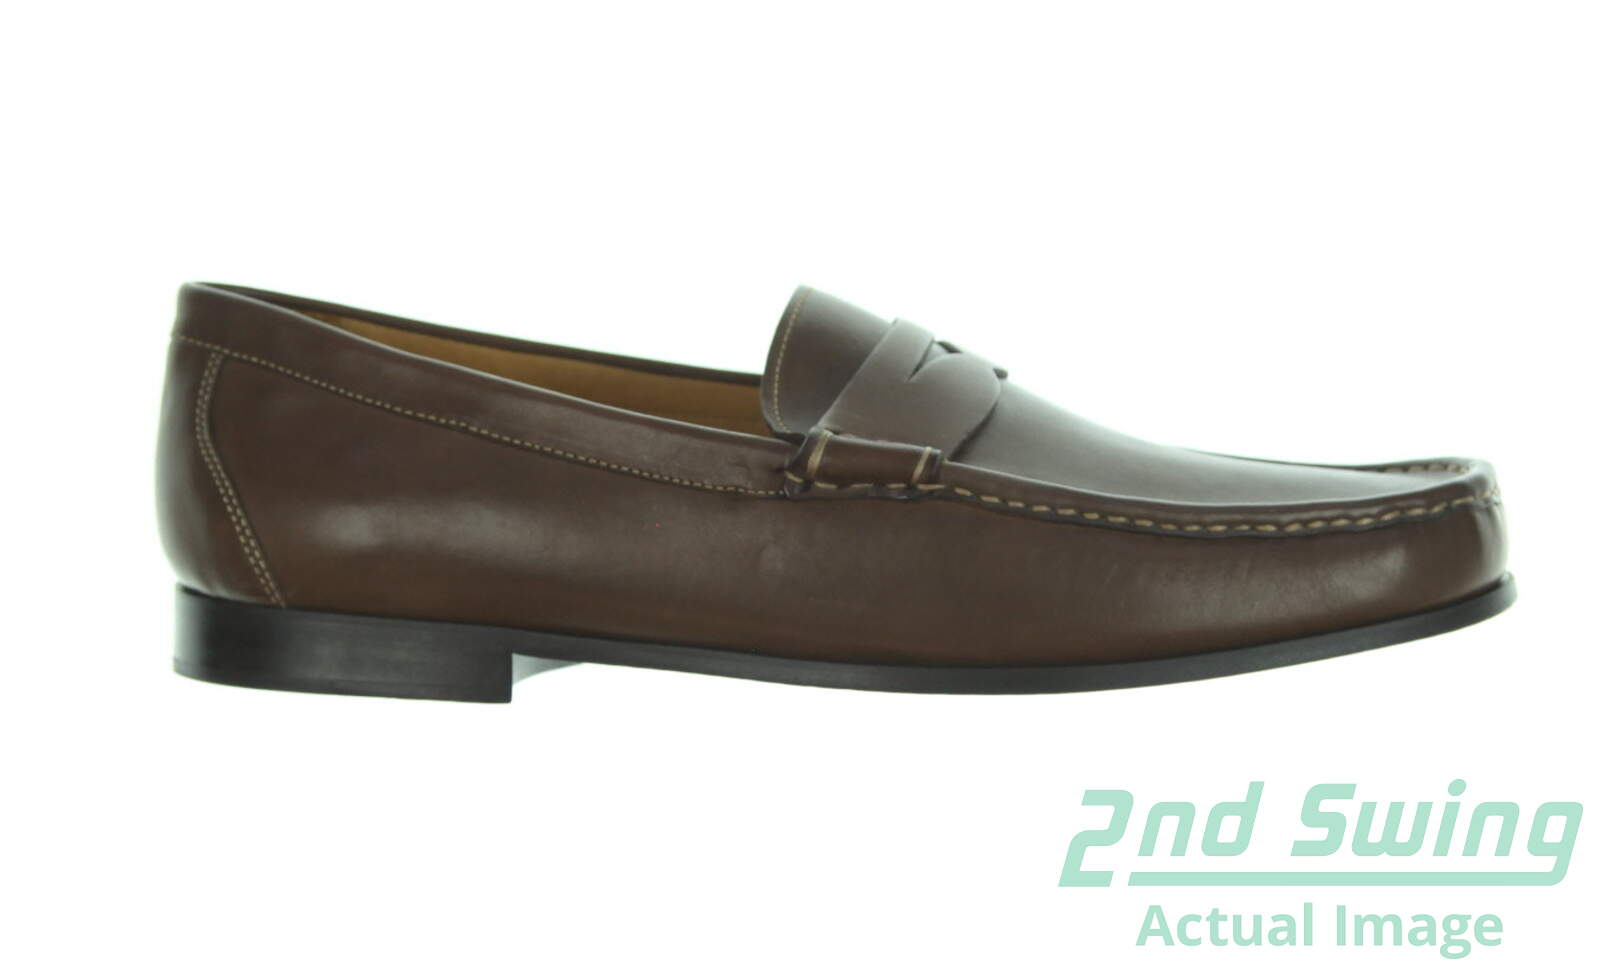 3faed232e61 New Mens Golf Shoe Peter Millar Penny Loafer 8 Chocolate MSRP  300 - Golf  Footwear